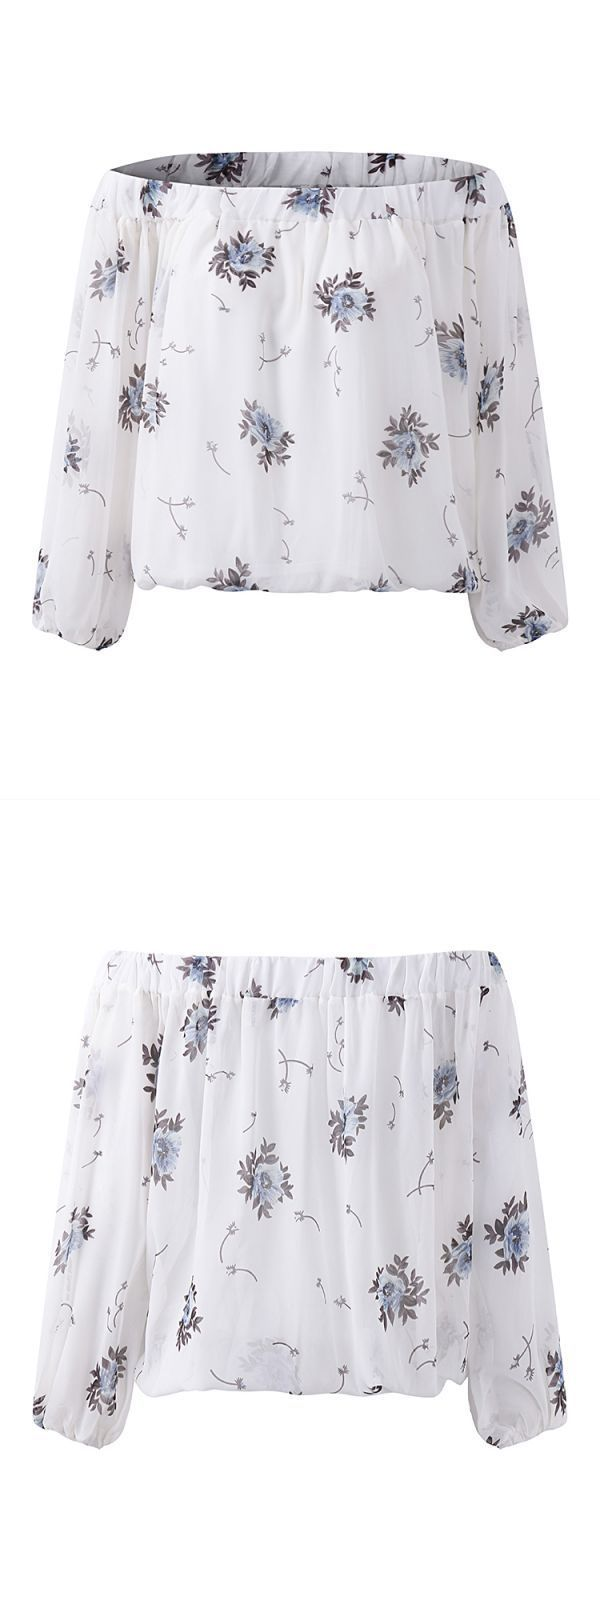 High Quality Women 8217 S Blouses Printed Off Shoulder Long Sleeve Blouse Casual